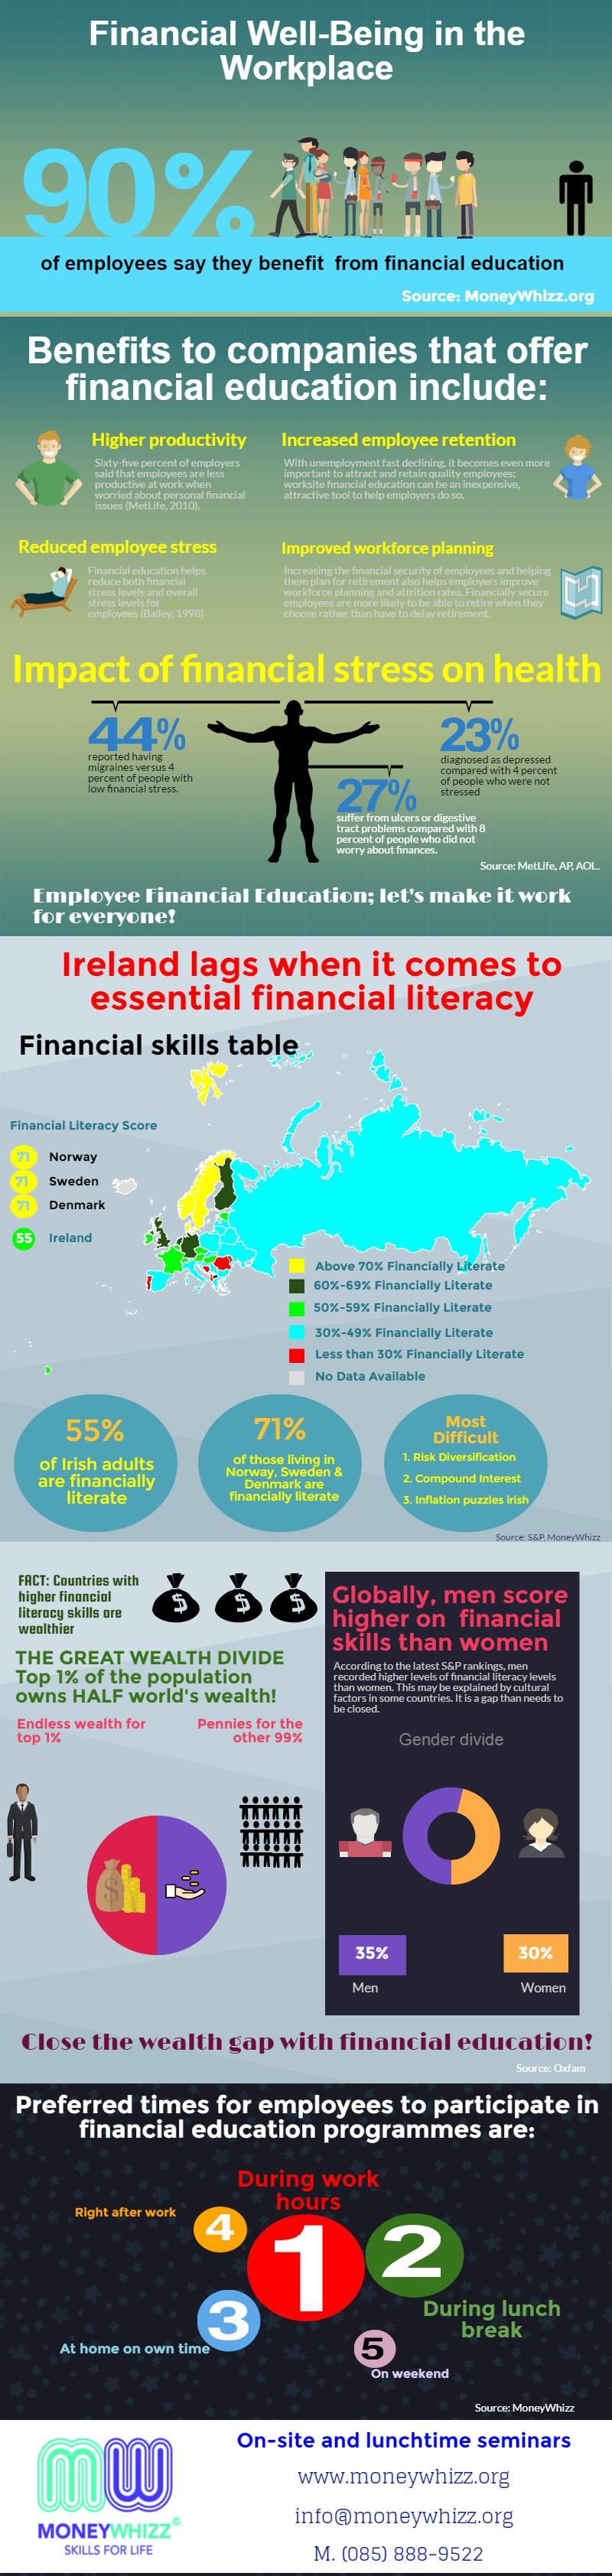 Financial Education in the workplace